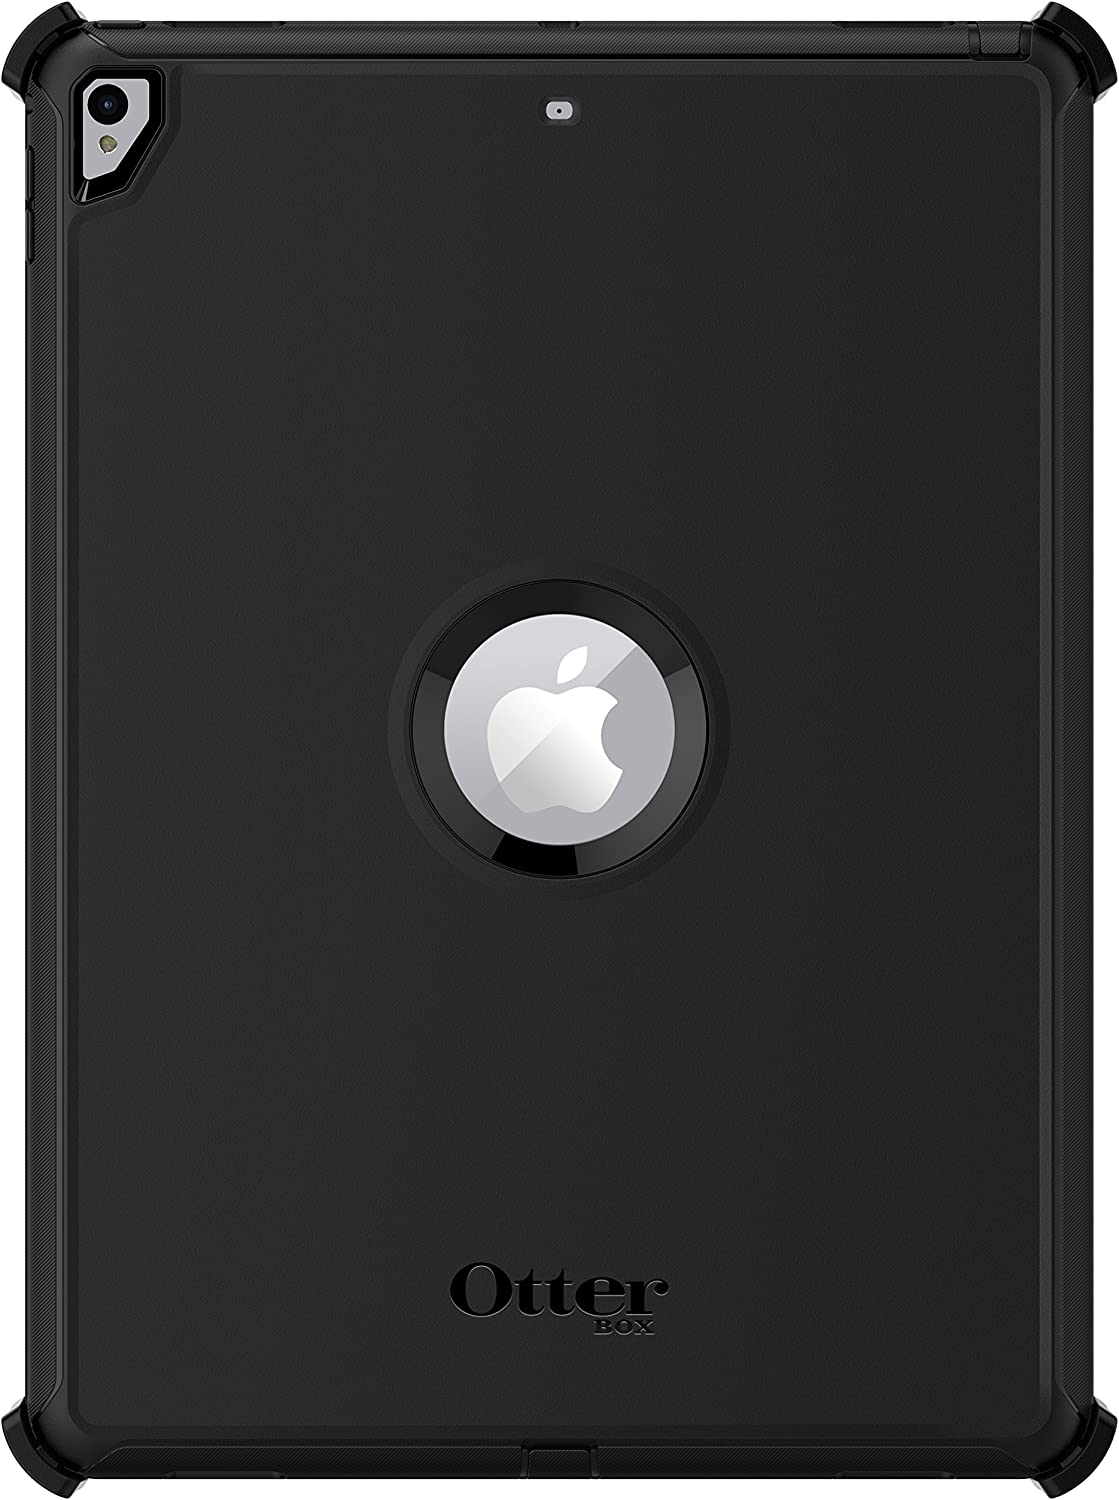 "OtterBox DEFENDER SERIES Case for iPad Pro (12.9"" - 2nd Gen) - Retail Packaging - BLACK"